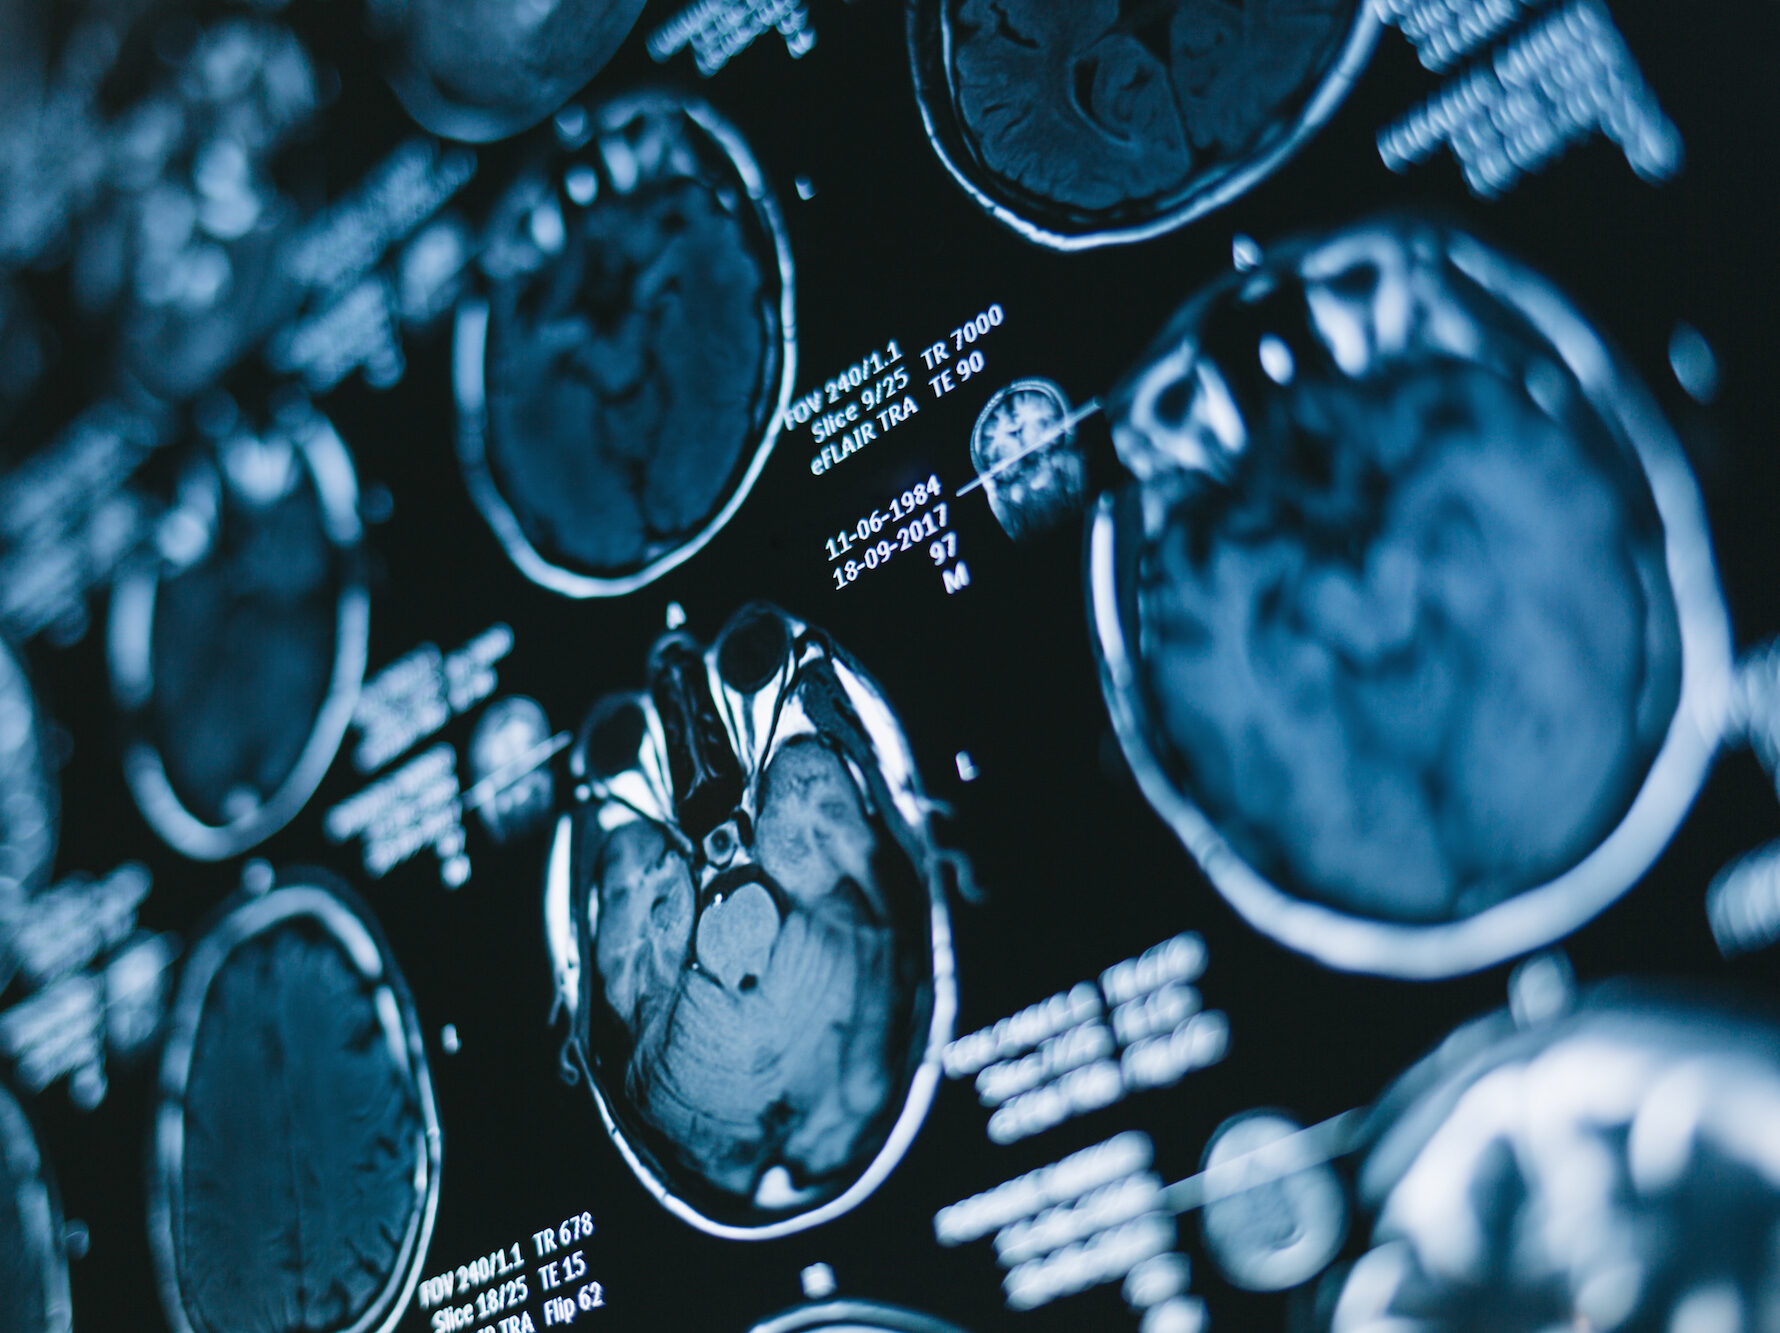 Radiologists Detect Injury Patterns Of Intimate Partner Violence